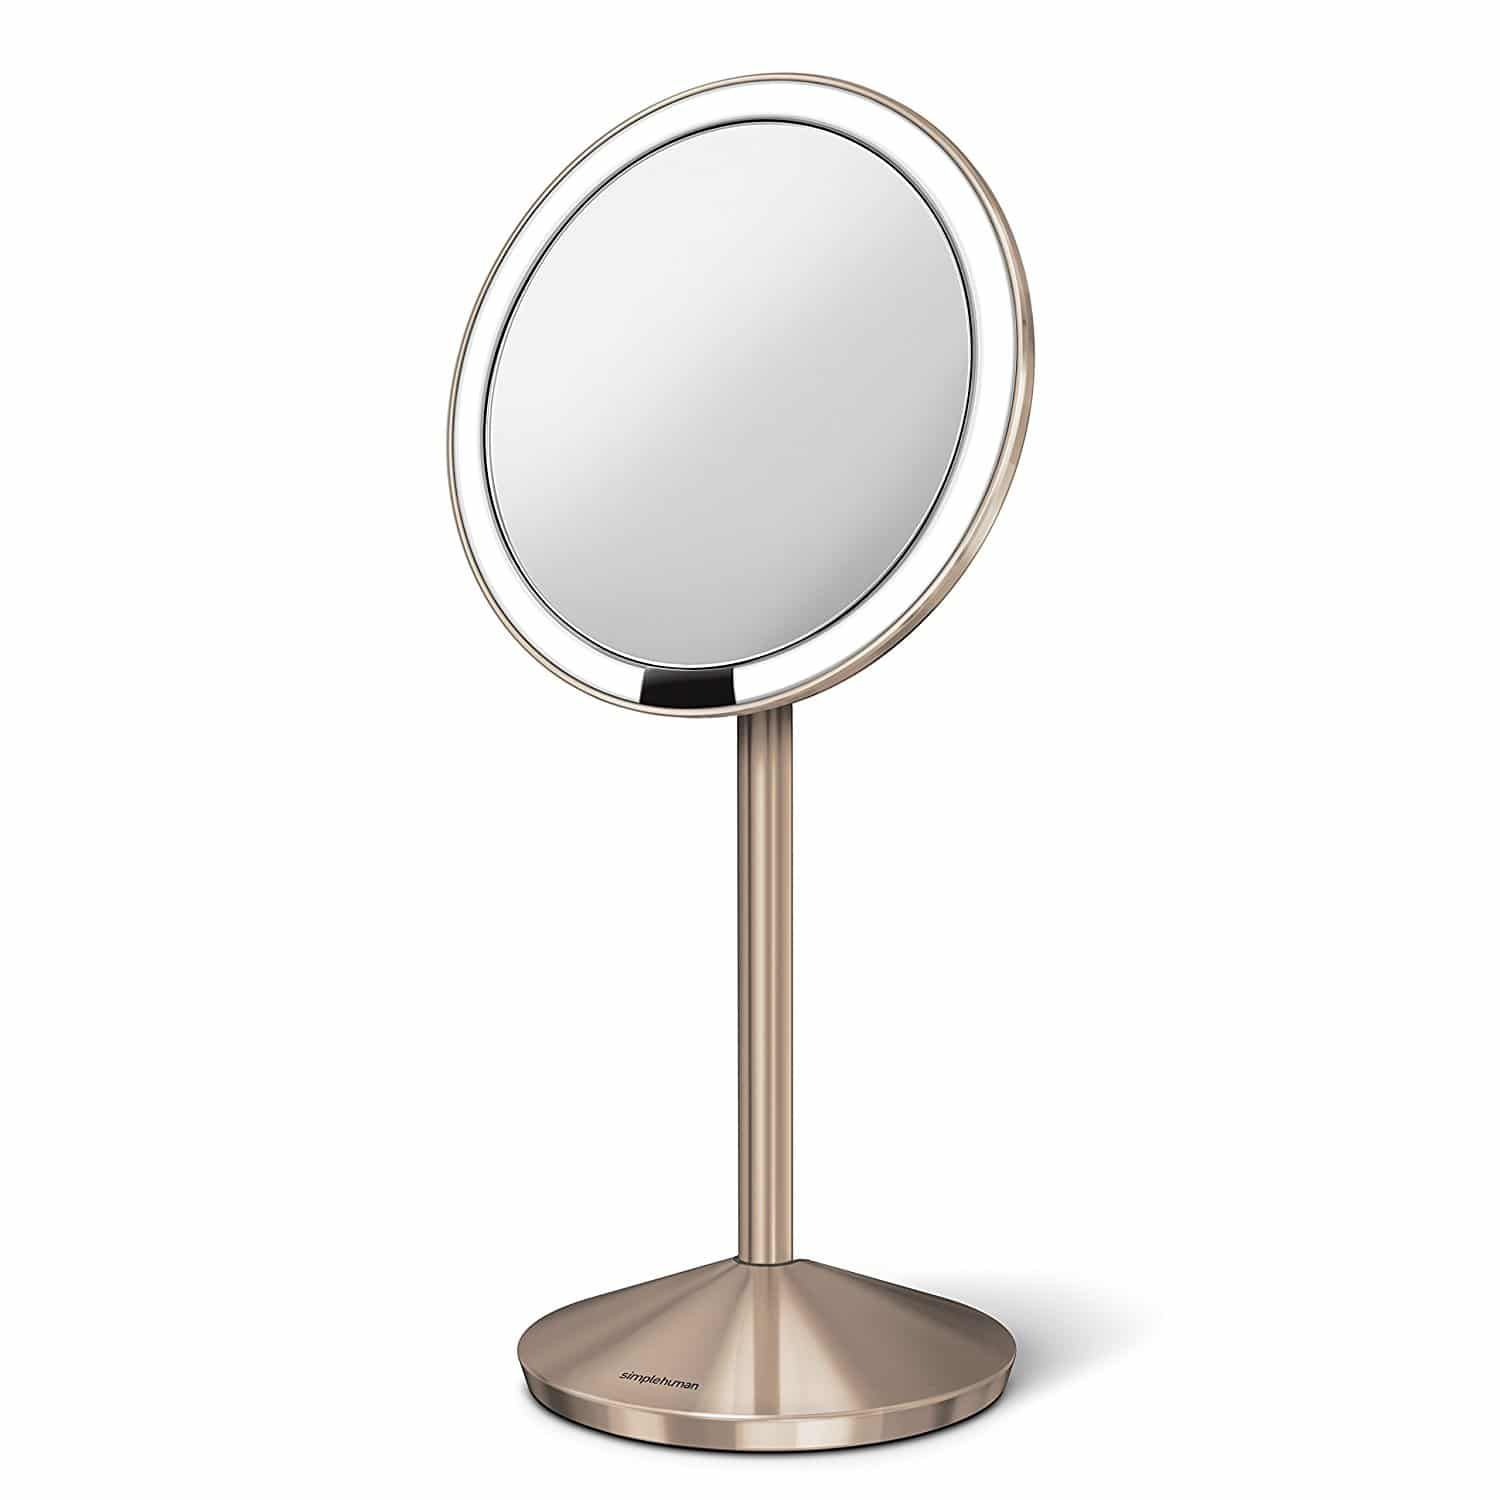 Top 10 Best Lighted Makeup Mirrors In 2020 Most Review Hqreview Mirror Makeup Mirrors Light Makeup